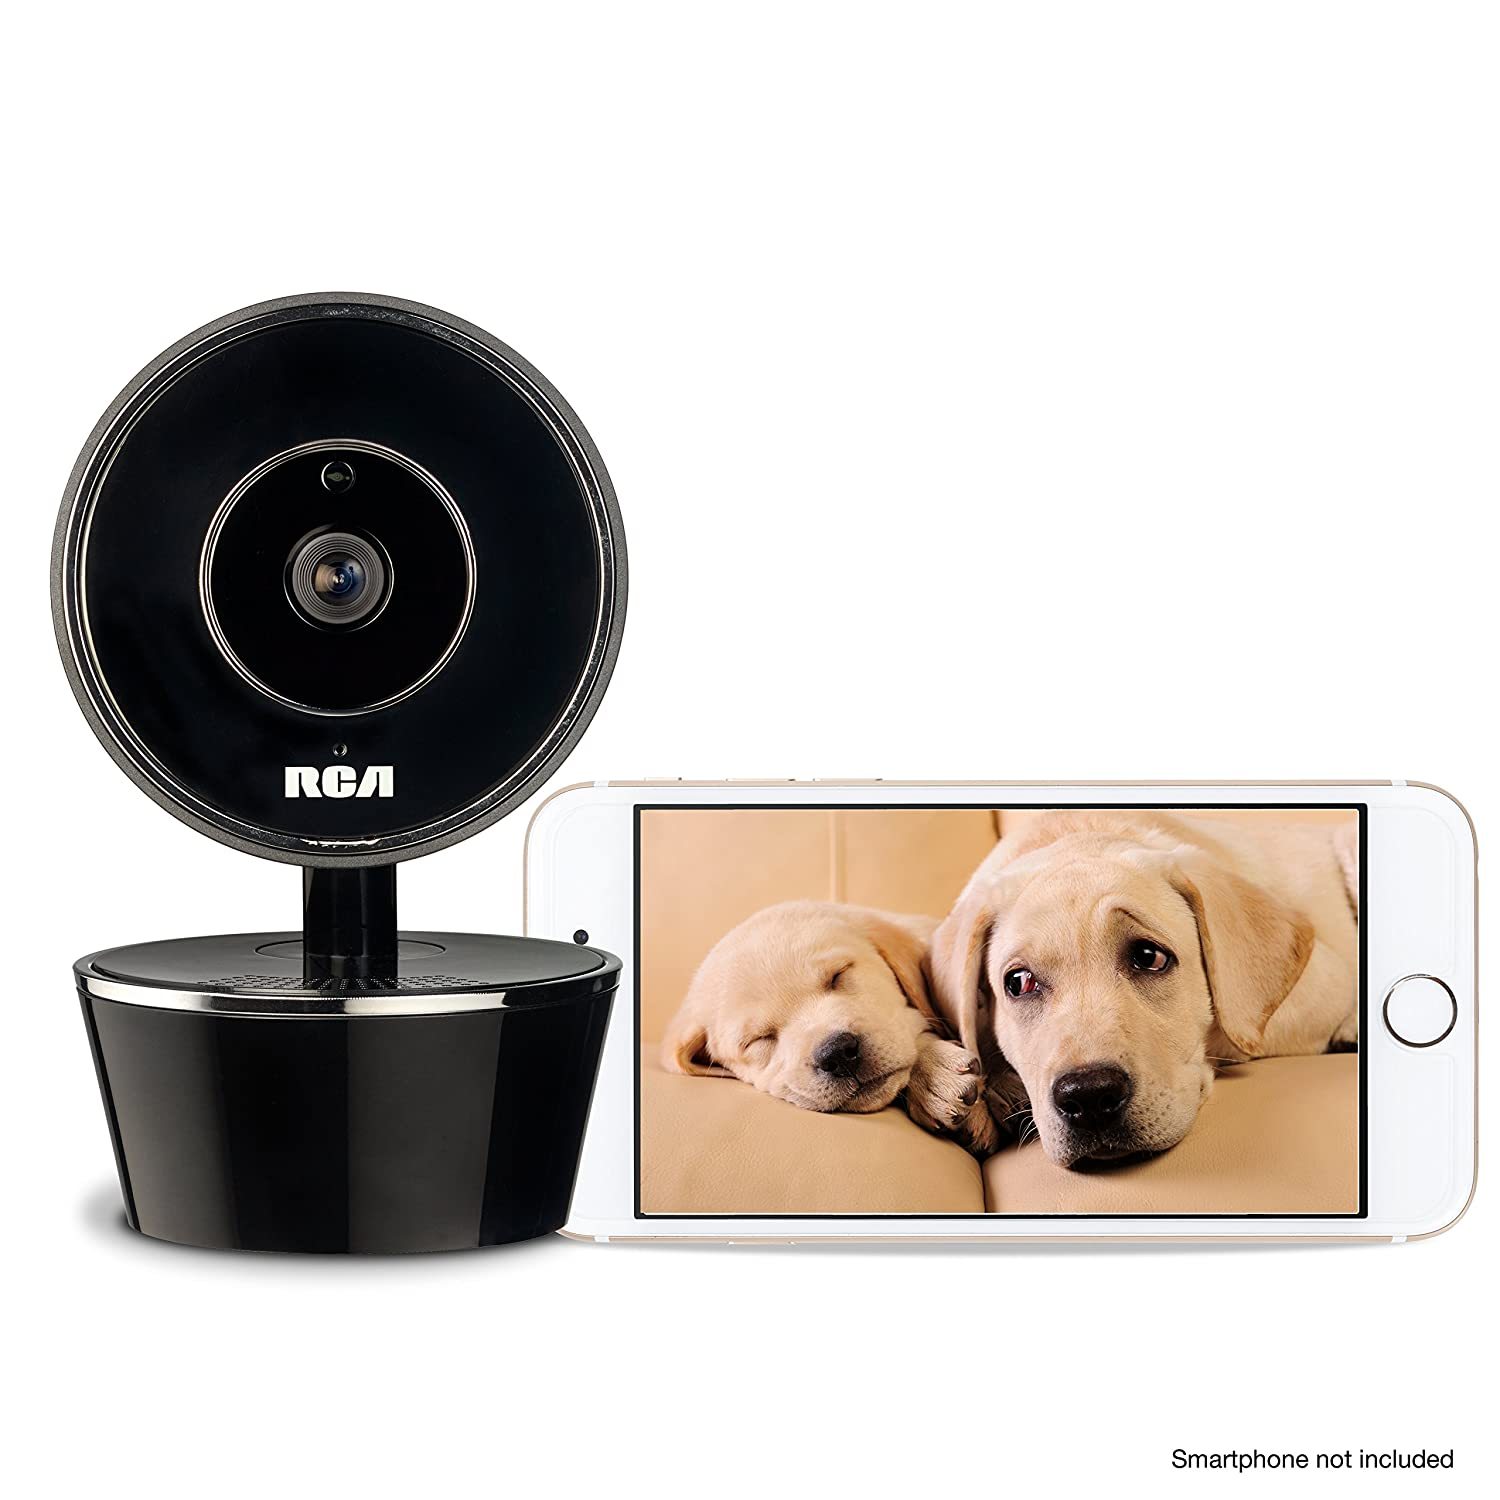 RCA Pet Camera for Dog & Cat Parents WiFi Pet Security Camera with HD Video, 2 Way Audio, Night Vision, Motion & Sound Alerts & Phone App to Monitor & Talk to Your Pets